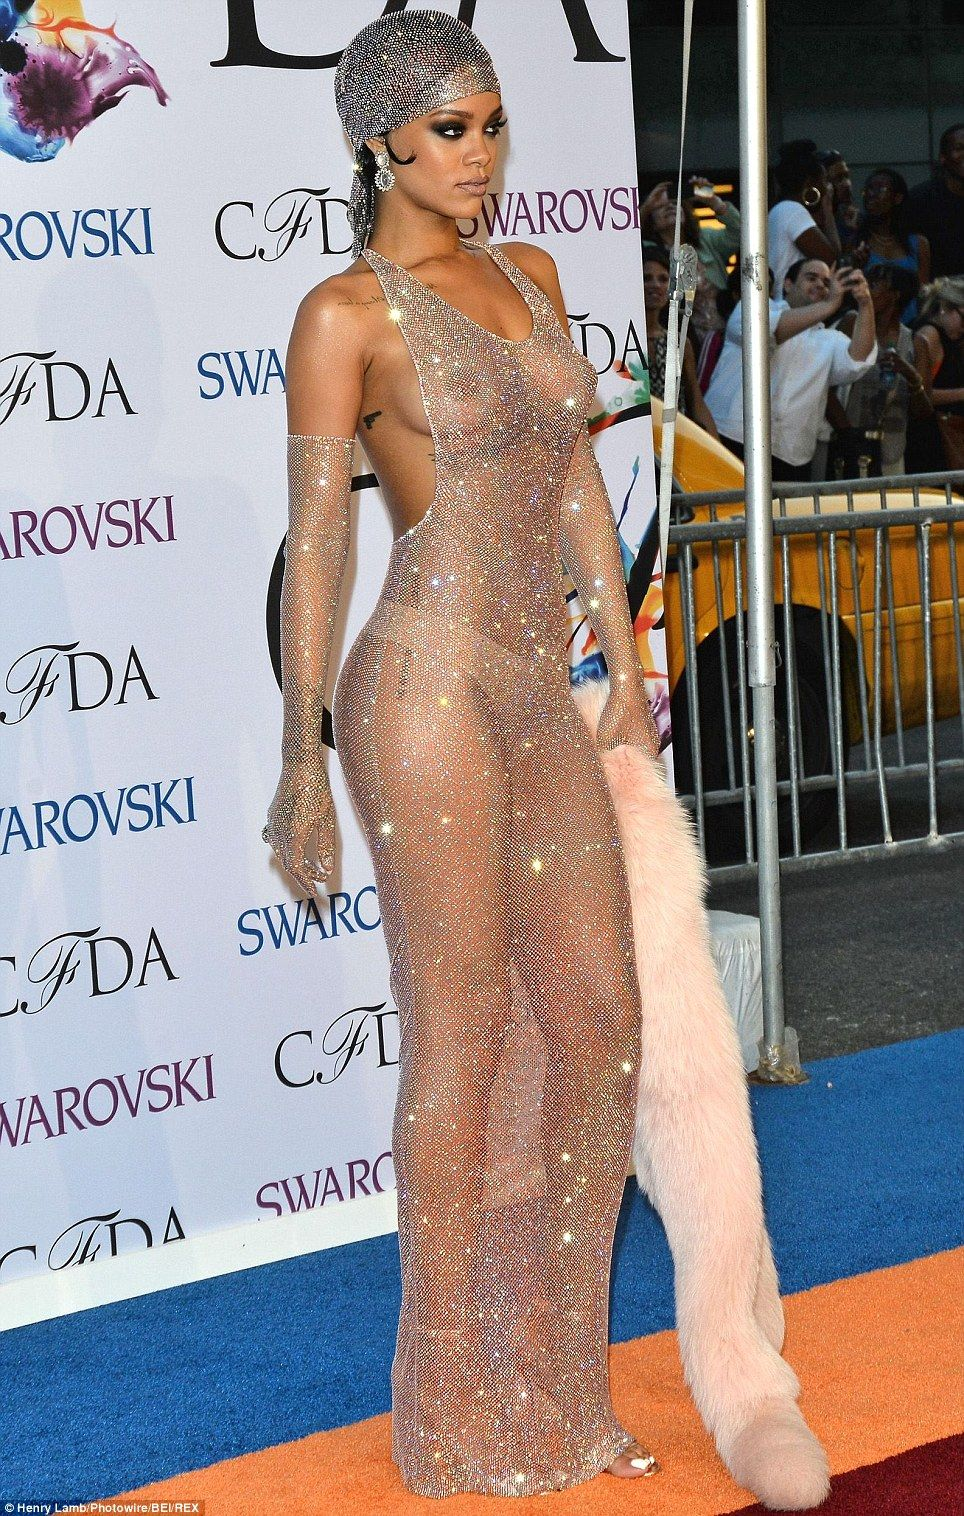 Rihanna Leaves Nothing To The Imagination In Sheer Dress At Cfdas Sheer Dress Celebs Rihanna